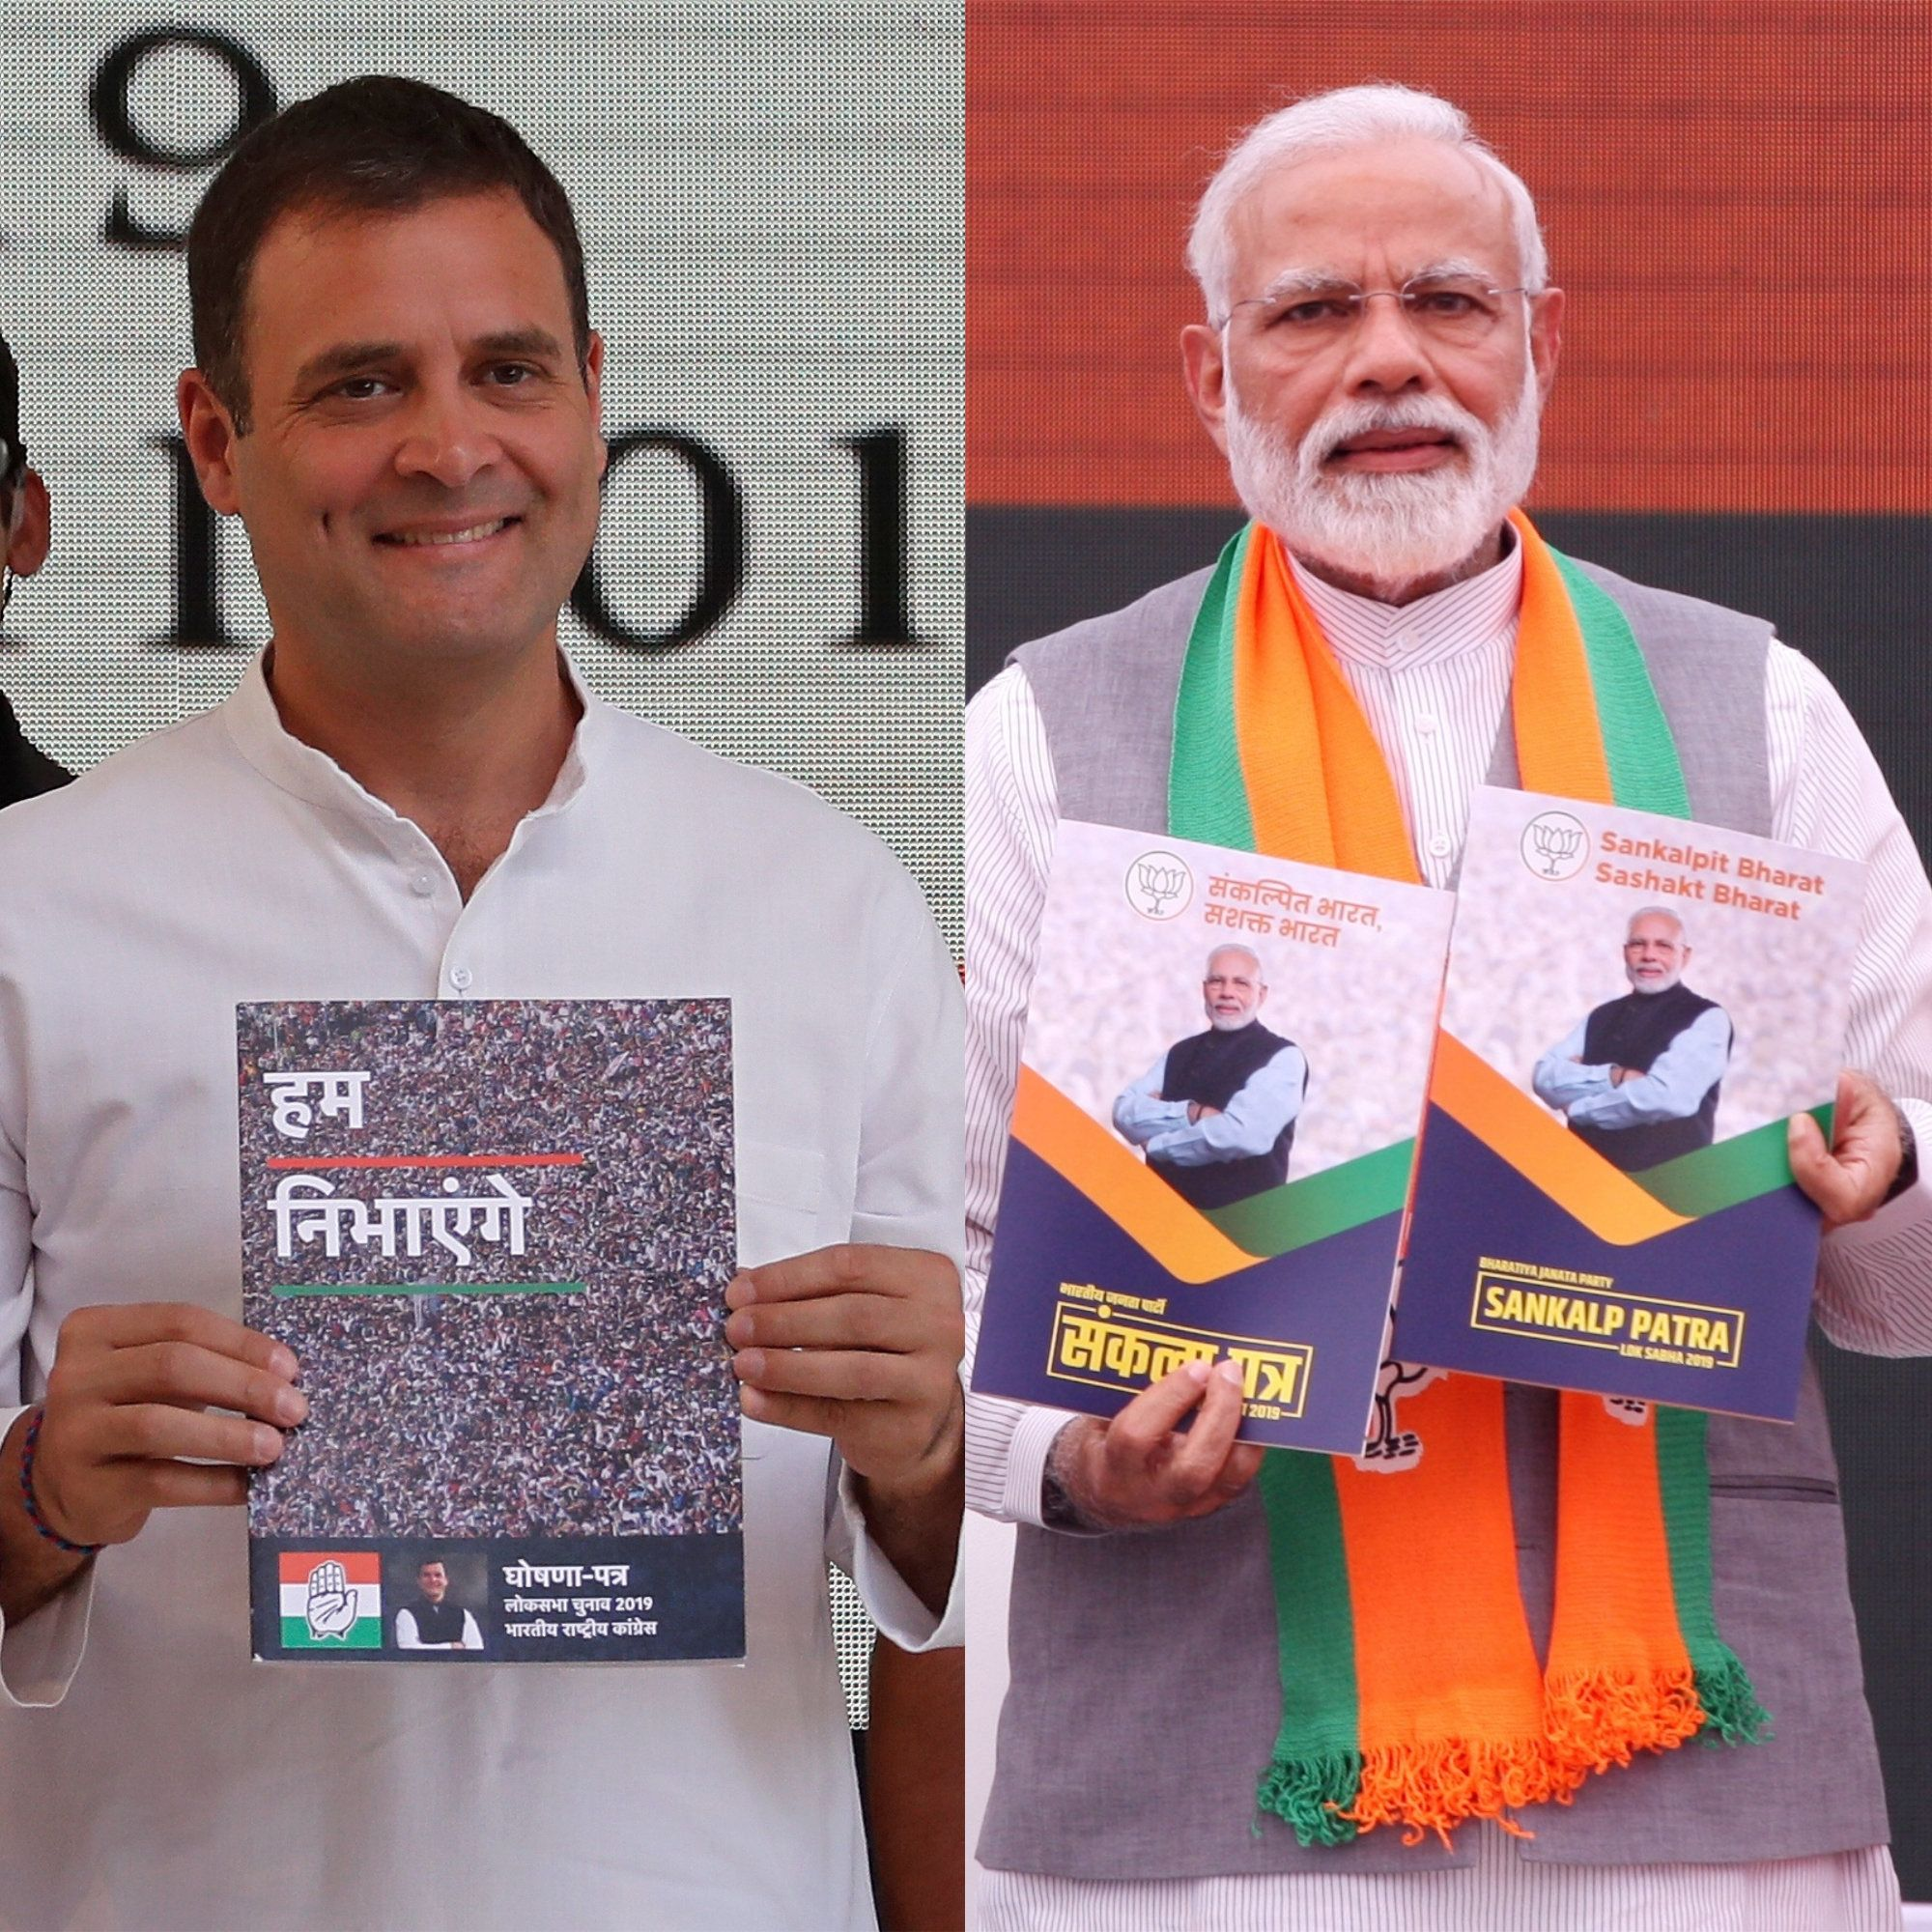 The BJP's Authoritarianism Is Based On The Congress's Draconian